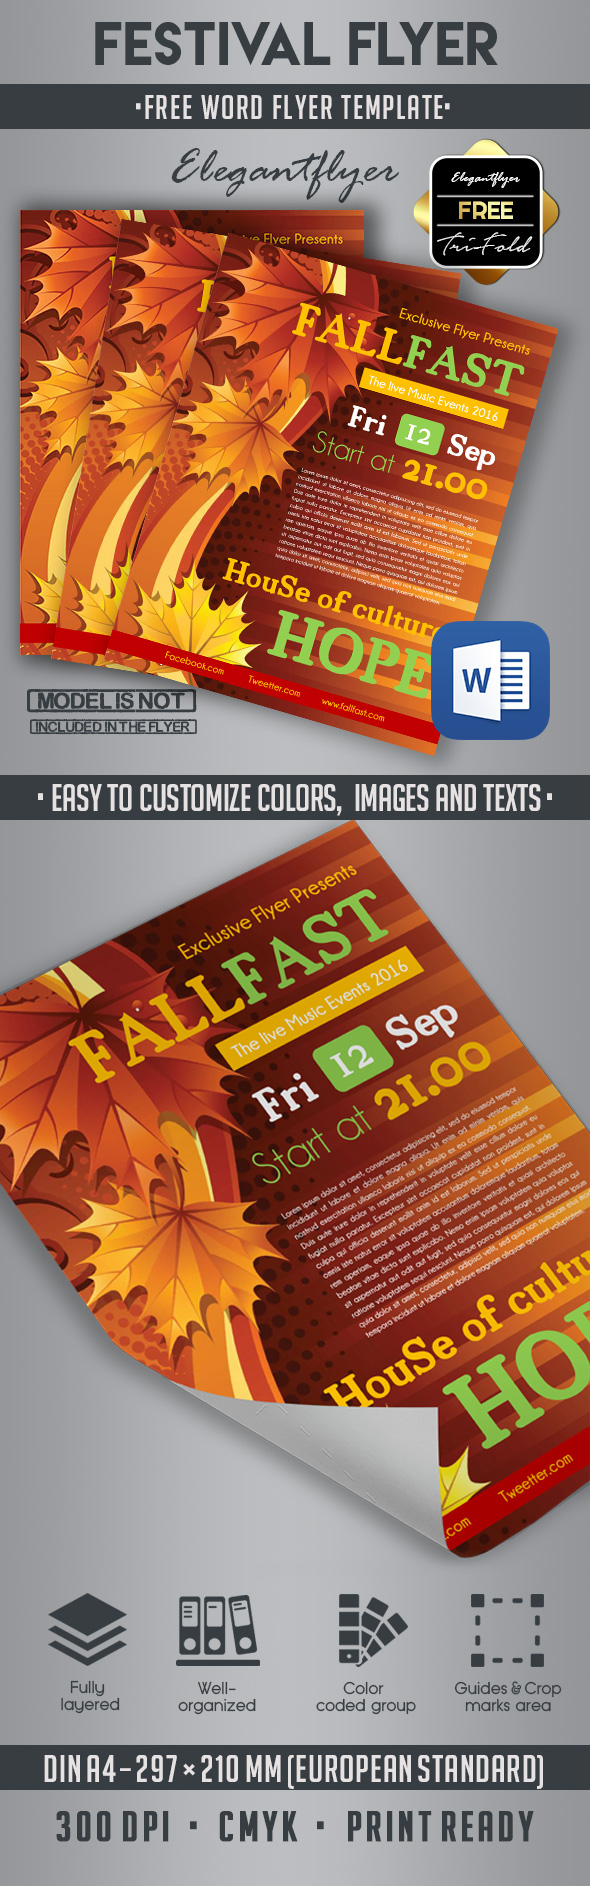 Flyer Template Word Free from www.elegantflyer.com